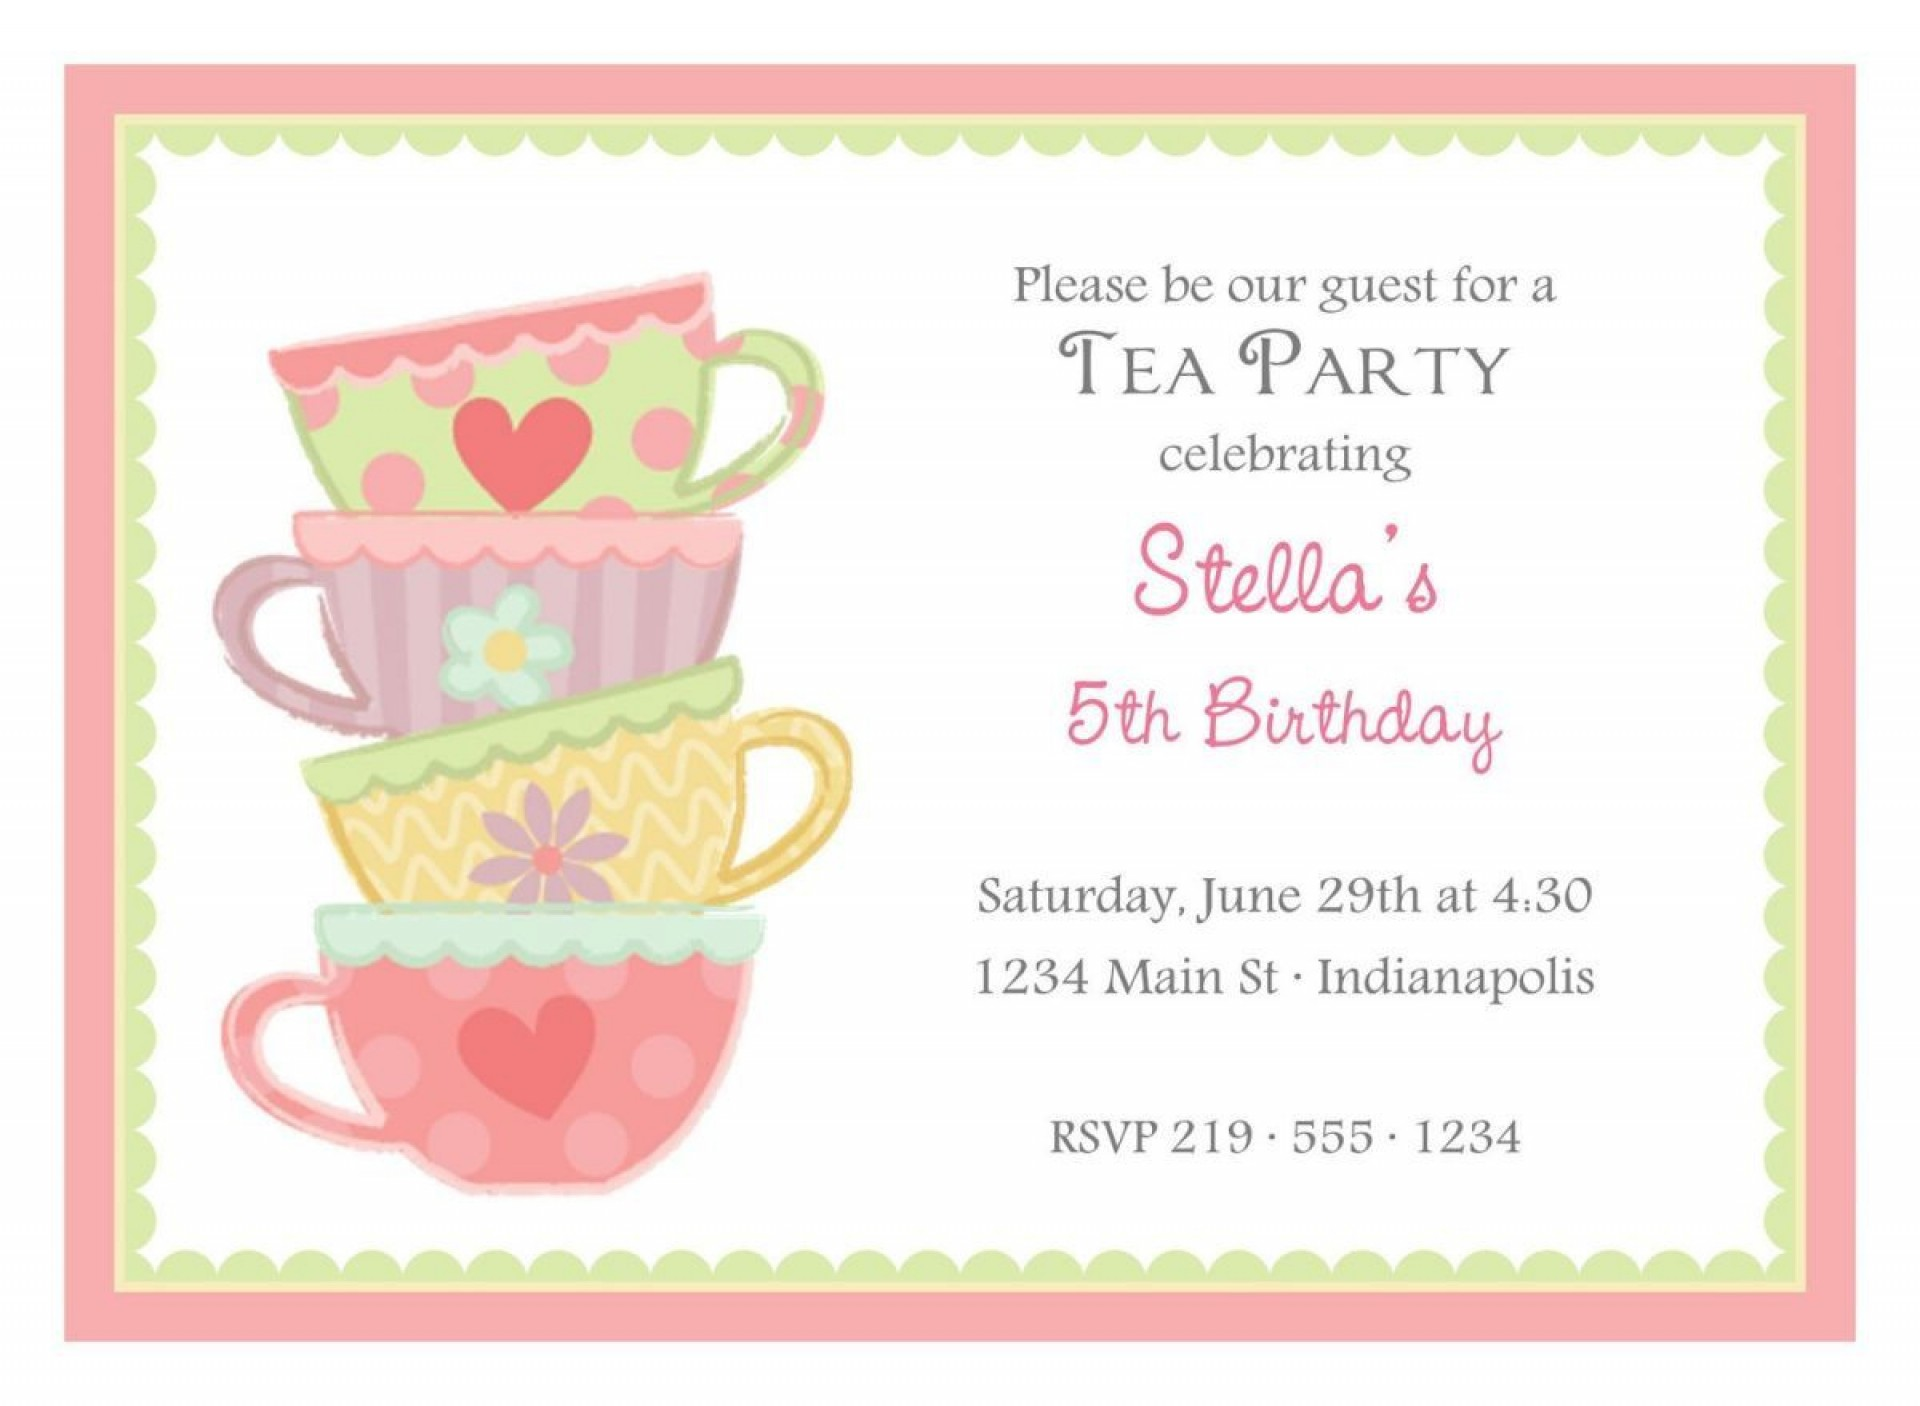 003 Formidable Tea Party Invitation Template Image  Online Letter1920